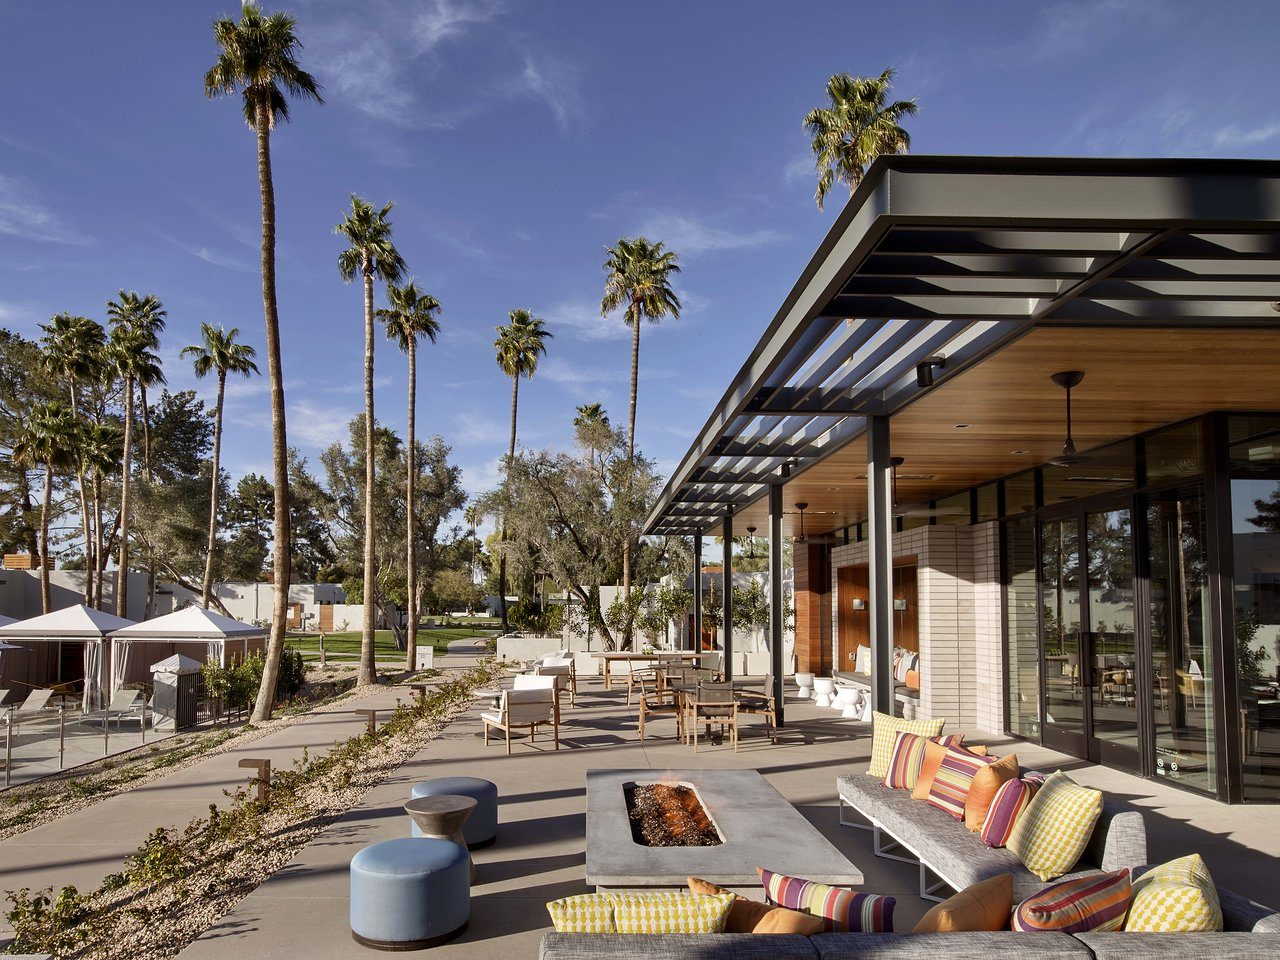 Andaz Scottsdale Resort & Bungalows, Arizona